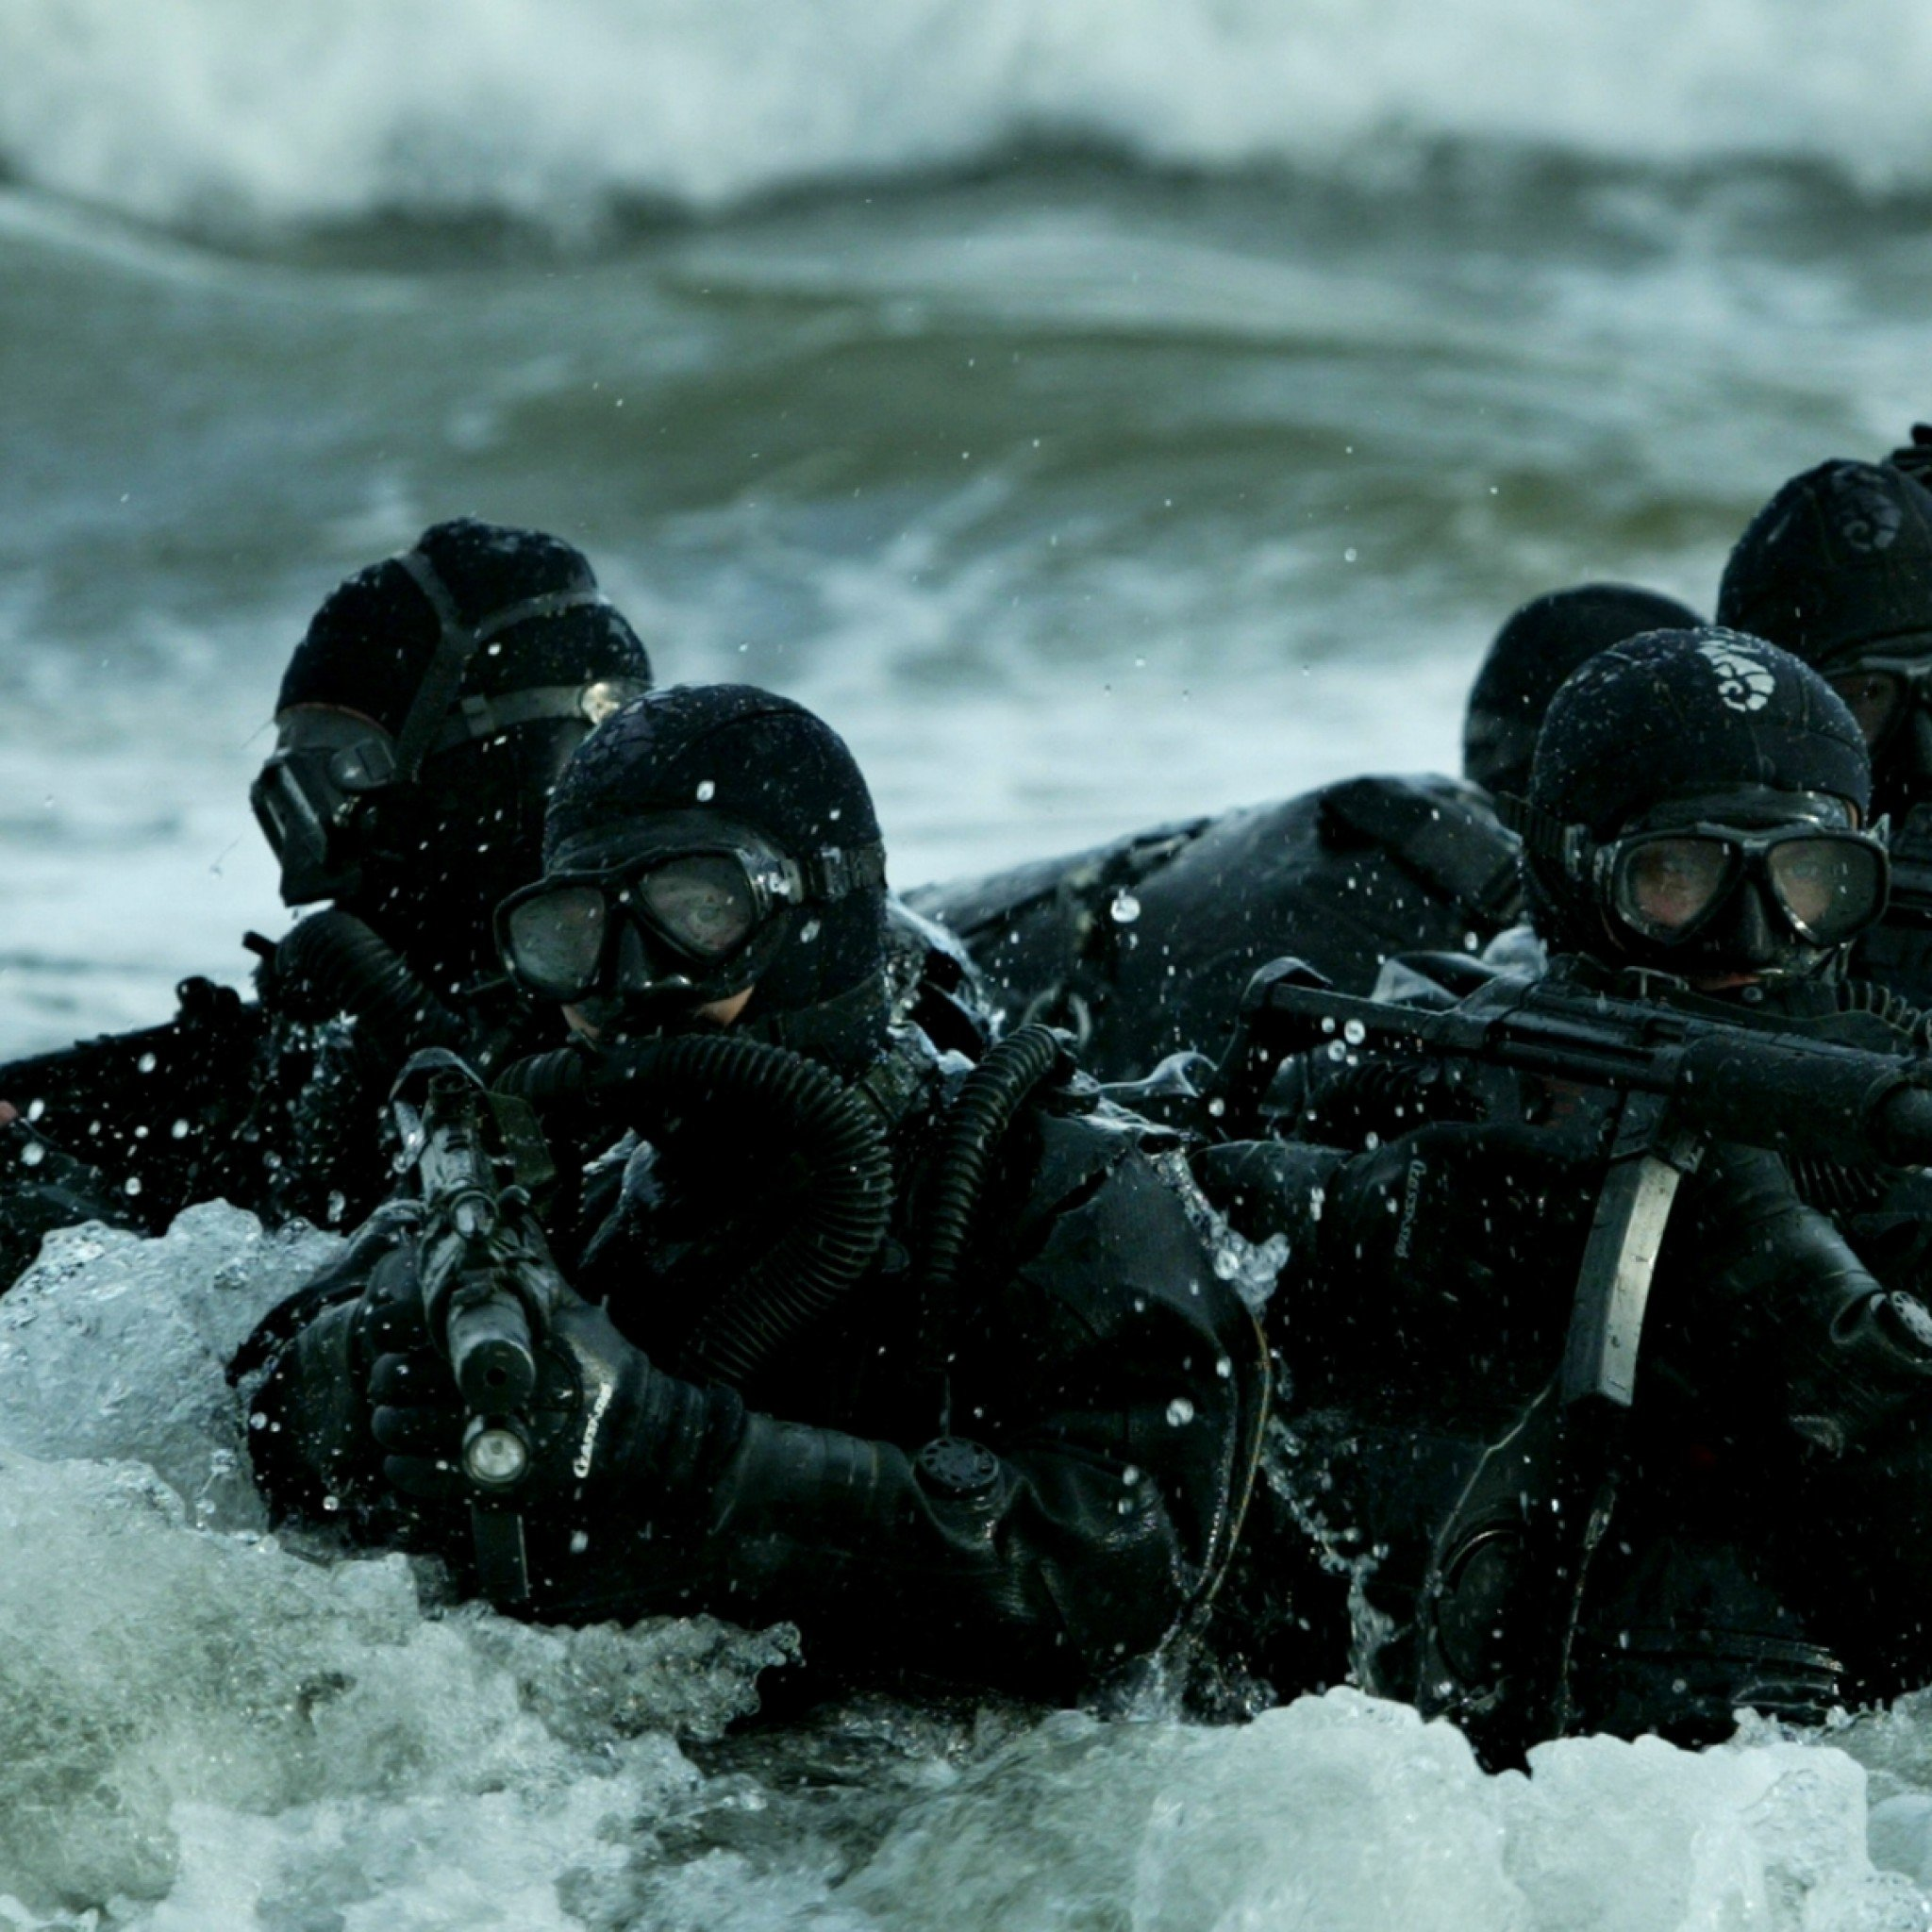 Free Download Army Ranger Wallpaper Iphone Army Military Navy Seals All Wallpapers 2048x2048 For Your Desktop Mobile Tablet Explore 48 Army Phone Wallpaper Military Wallpaper For Phone Army Wallpapers